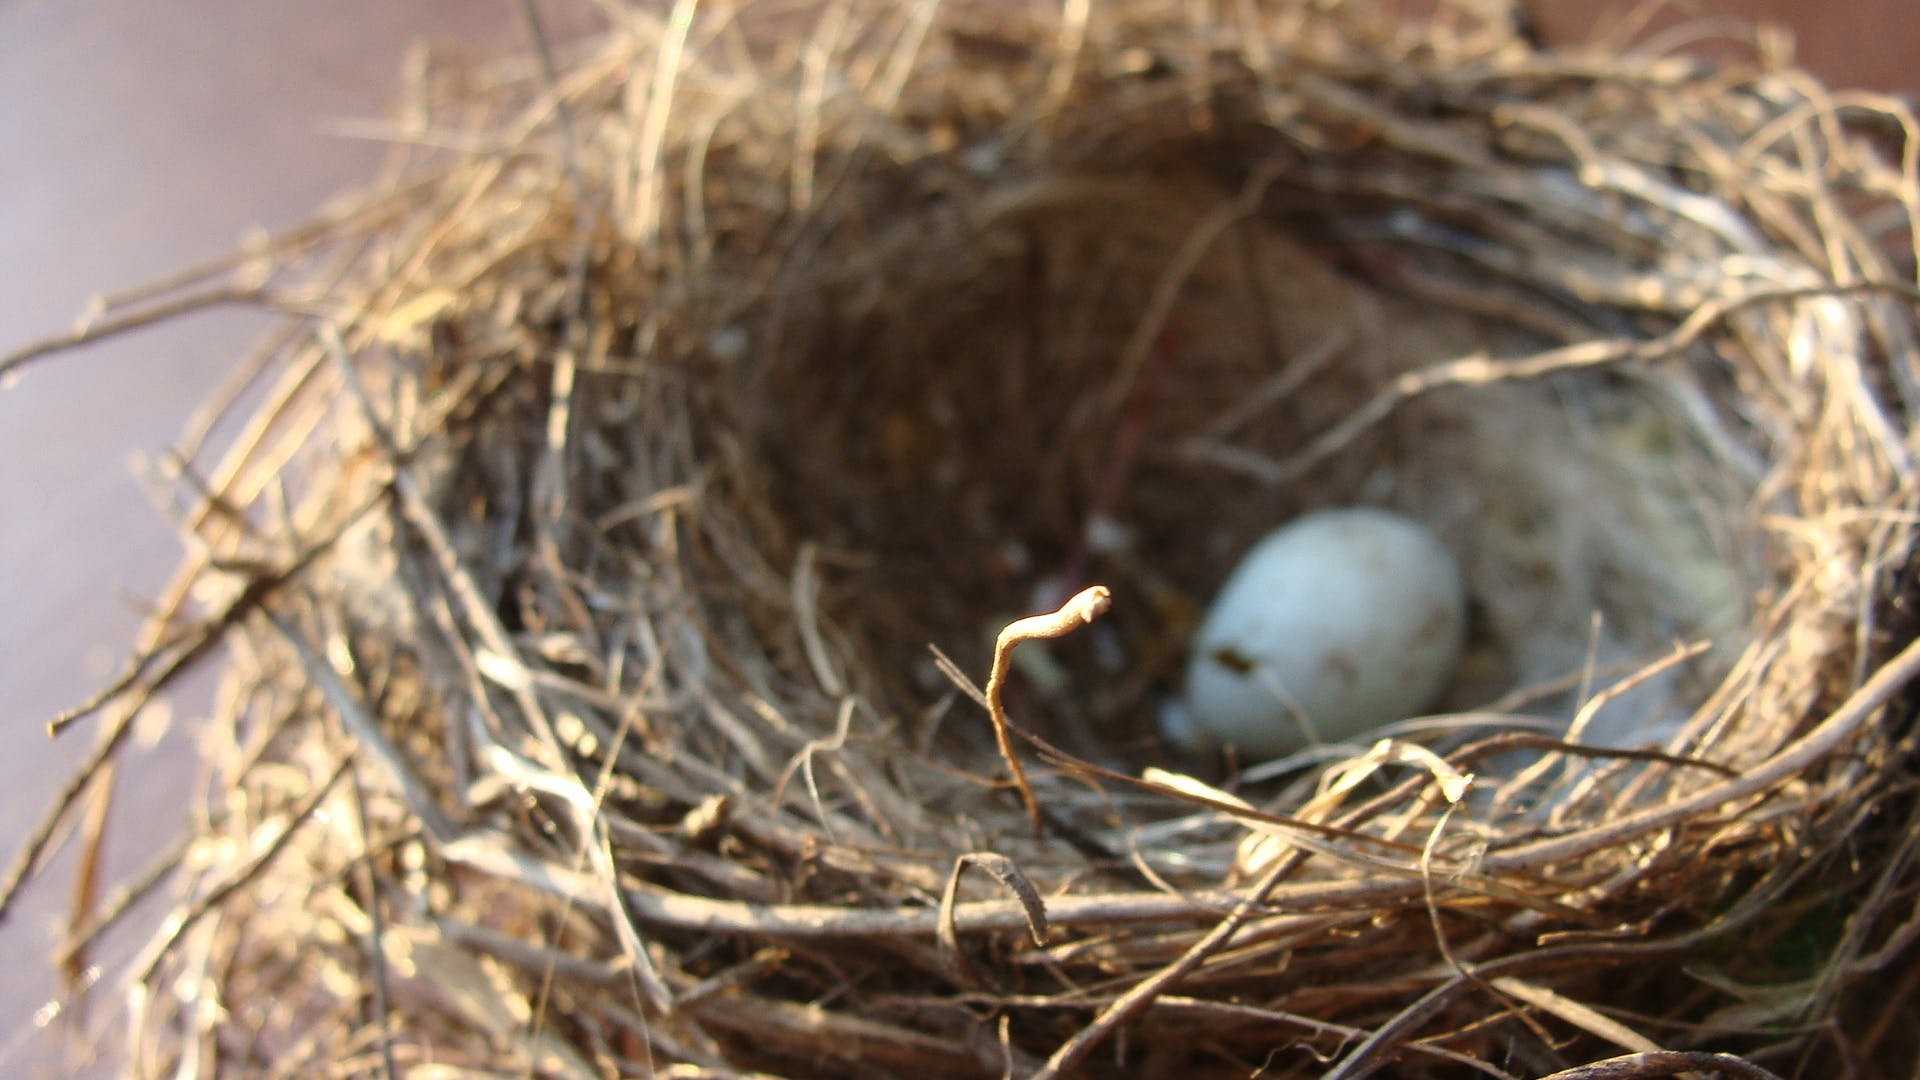 White Egg on Nest